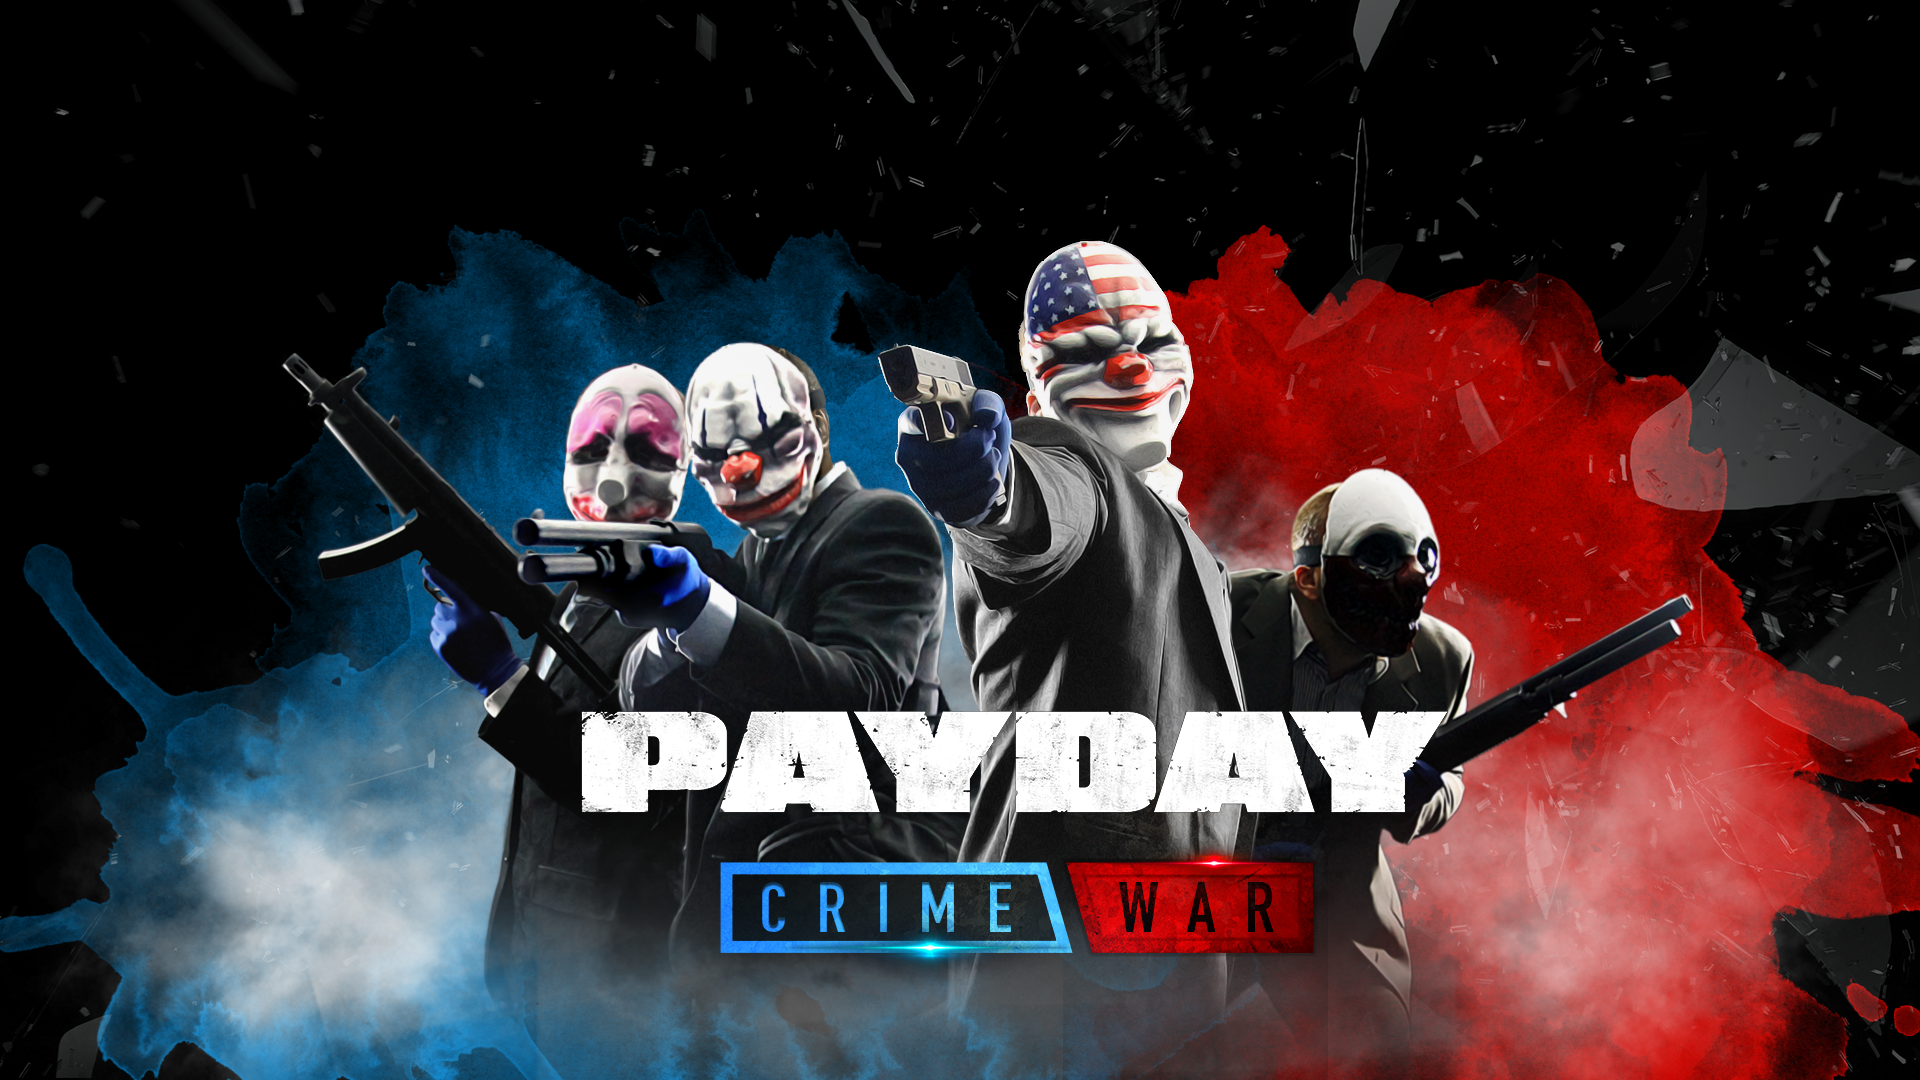 Starbreeze enters licensing agreement with PopReach for PAYDAY Crime War – Starbreeze